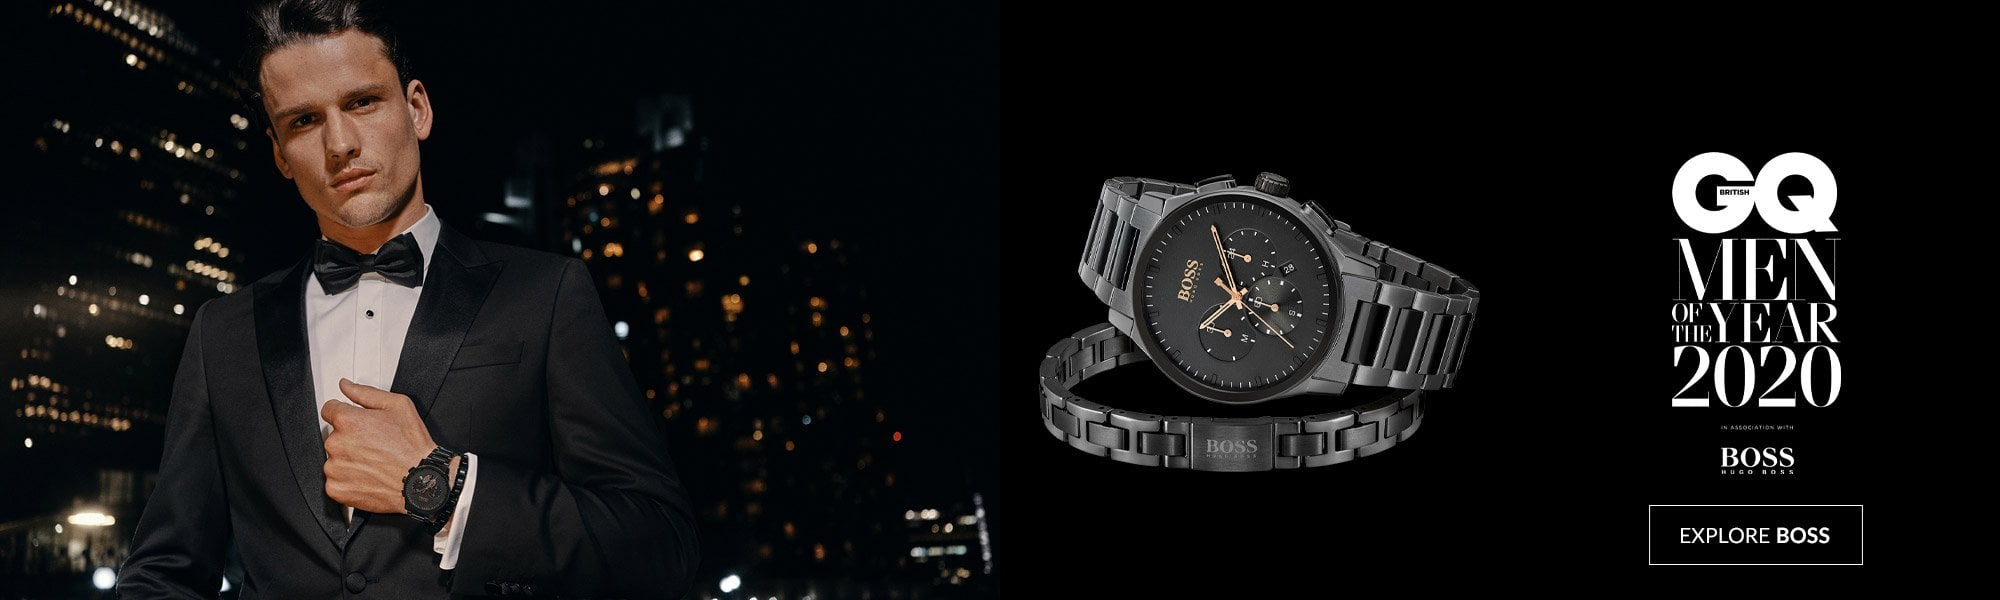 BOSS Watches - Explore the Collection